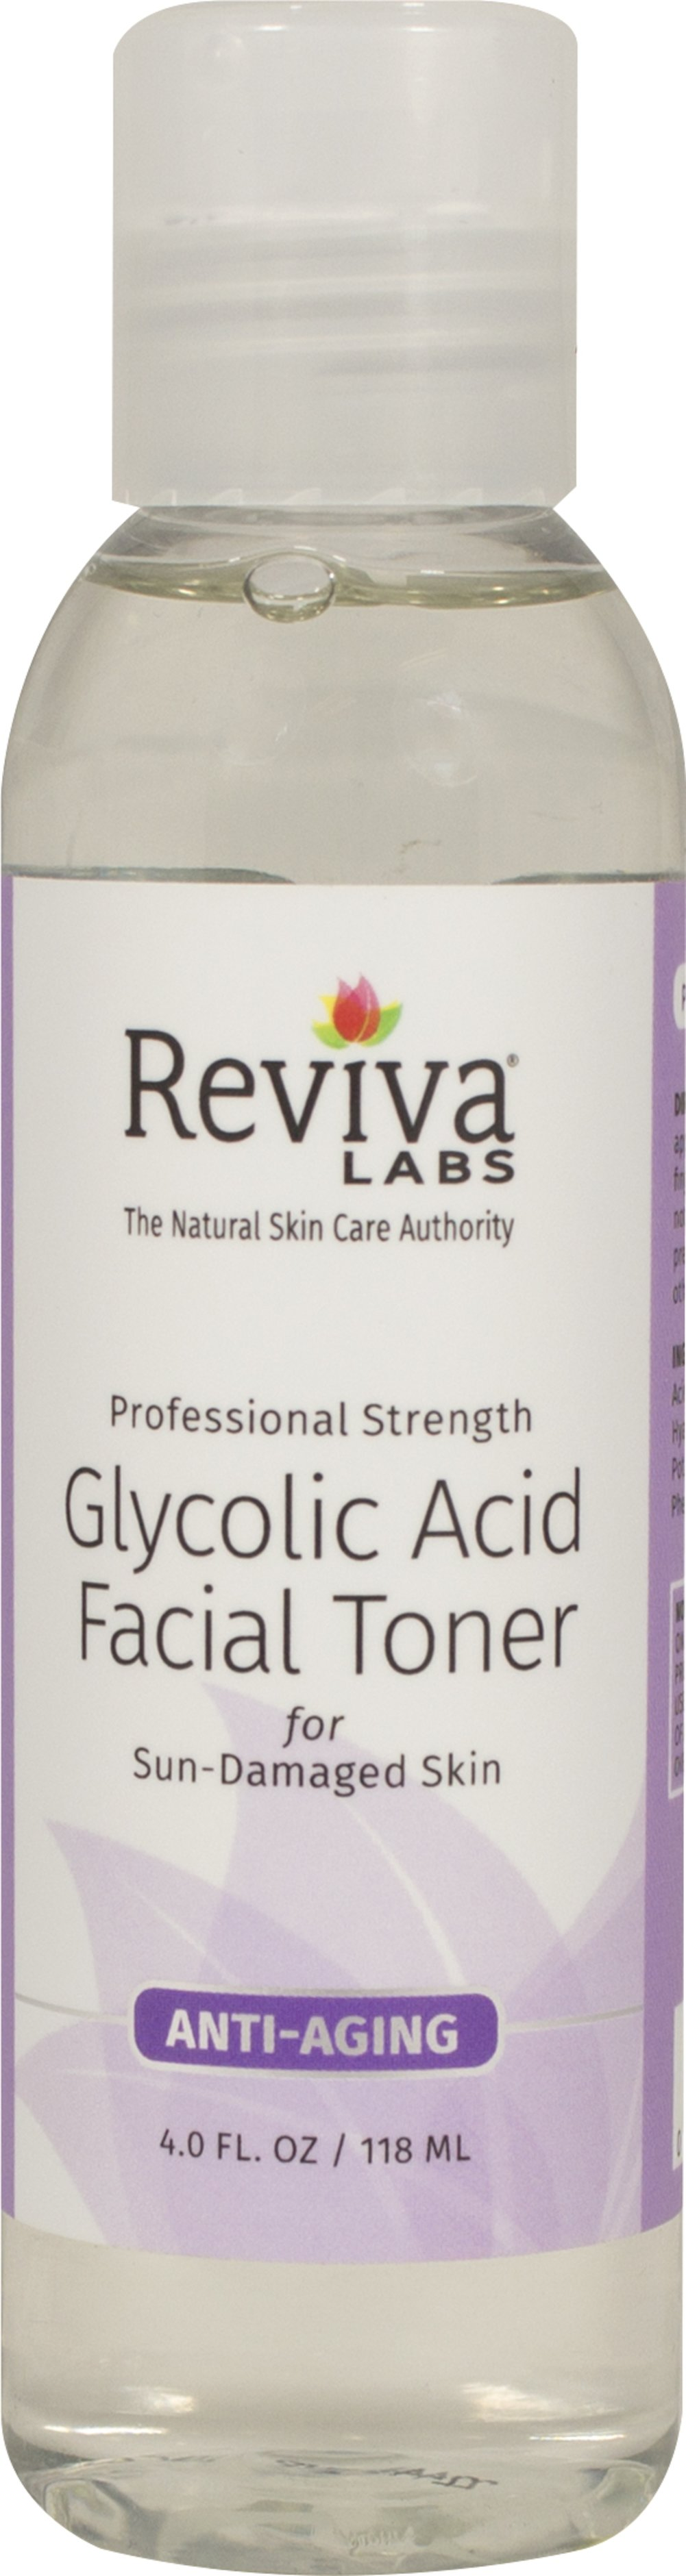 Glycolic Acid Facial Toner <p><strong>From the Manufacturer's Label:</strong></p><p>Glycolic Acid Facial Toner is manufactured by Reviva® Labs.</p><p>- No Animal Ingredients</p><p>- No Animal Testing</p> 4 fl oz Liquid  $8.29